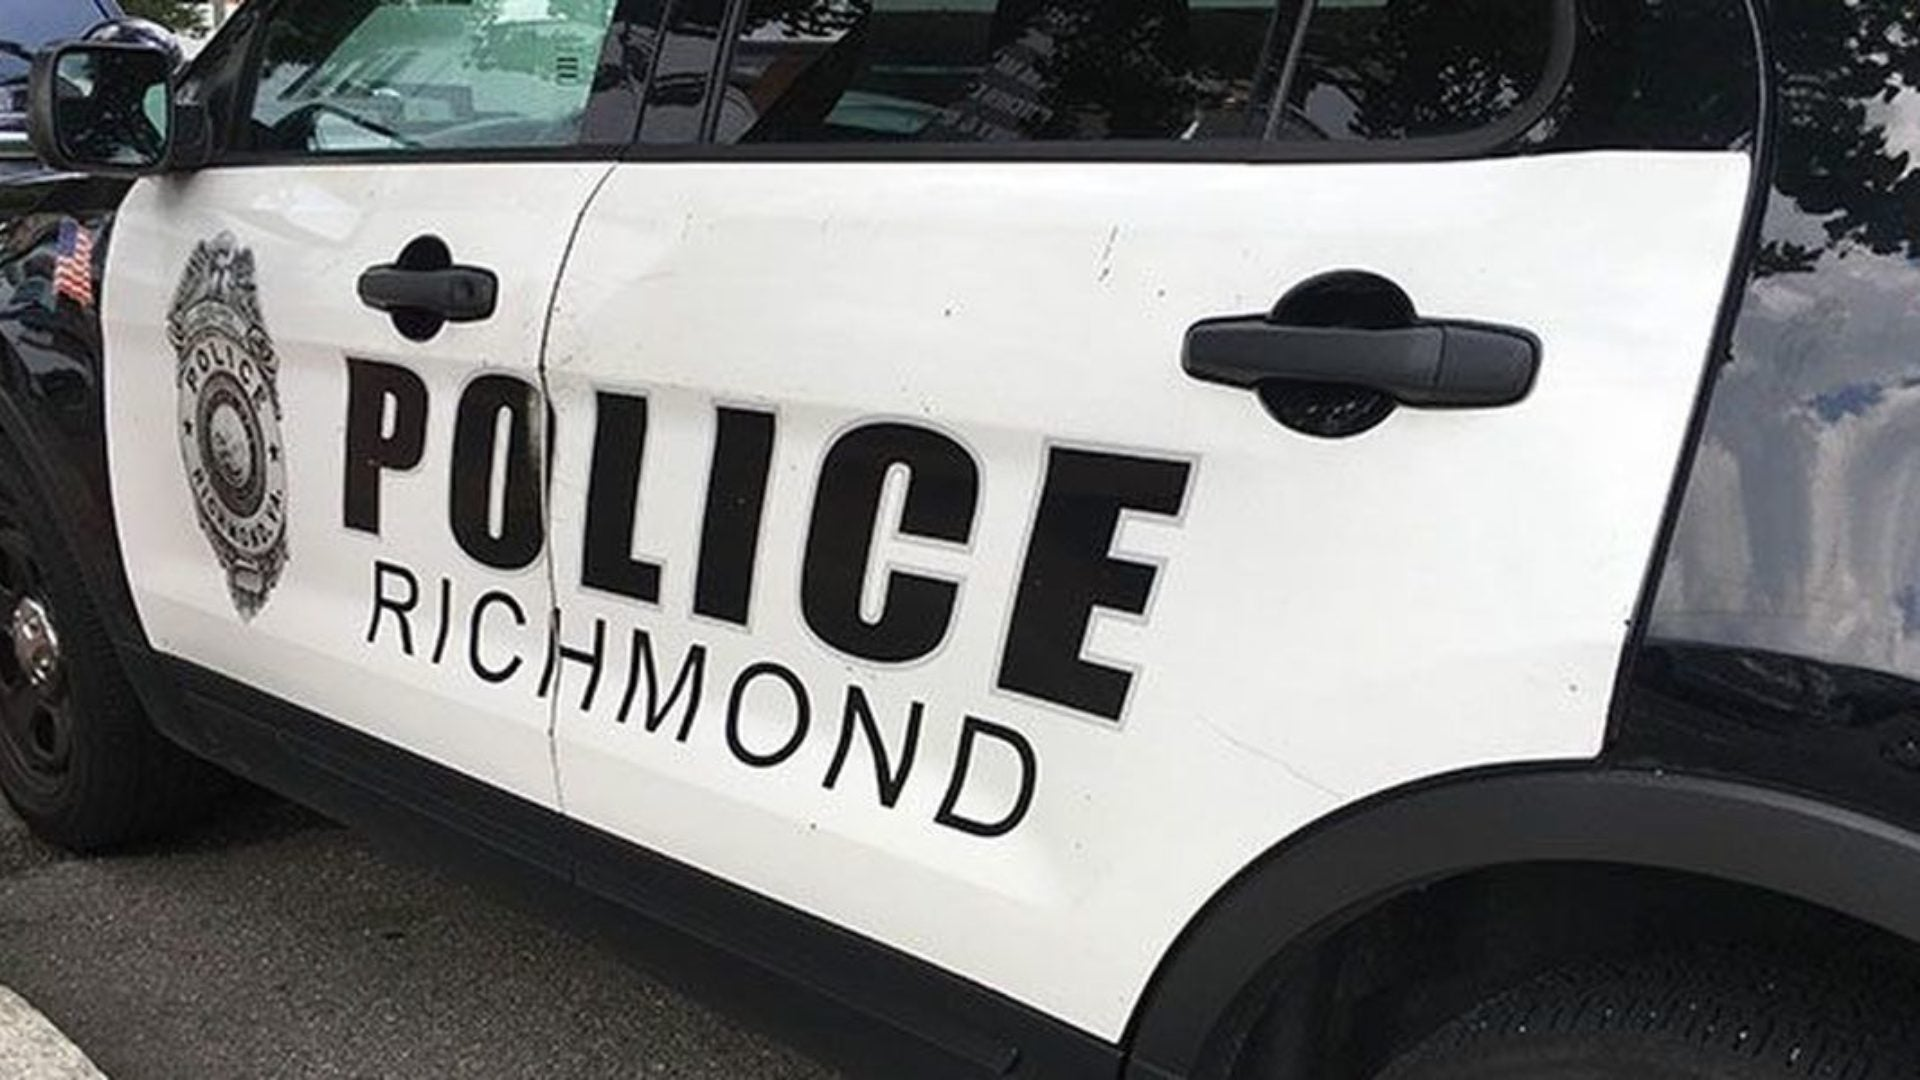 Richmond Officer To Undergo 'Remedial Training' For Threatening To Arrest Black Students When They Turn 18